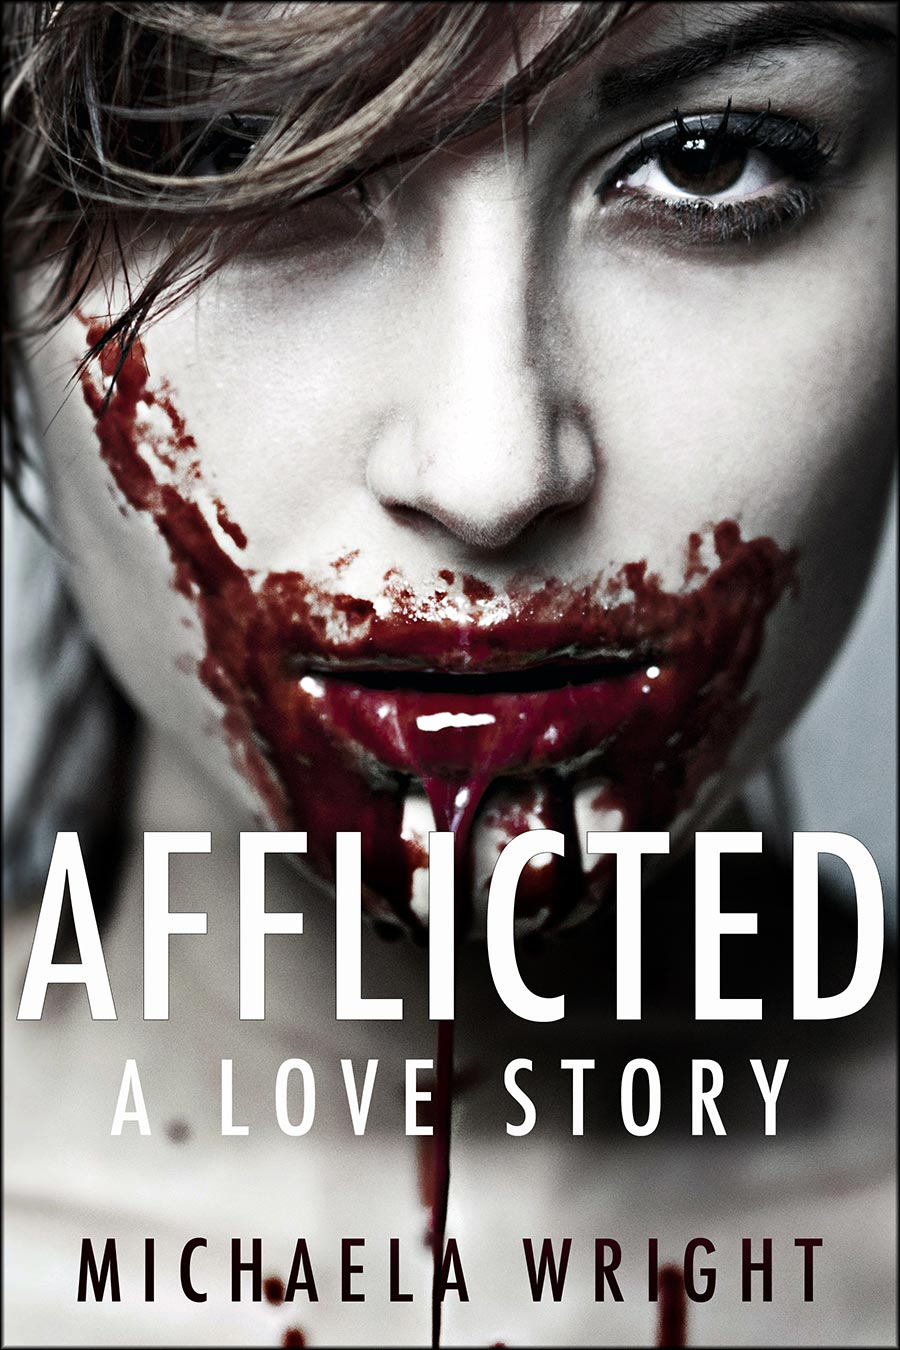 Afflicted-for-Michaela-Wright.jpg